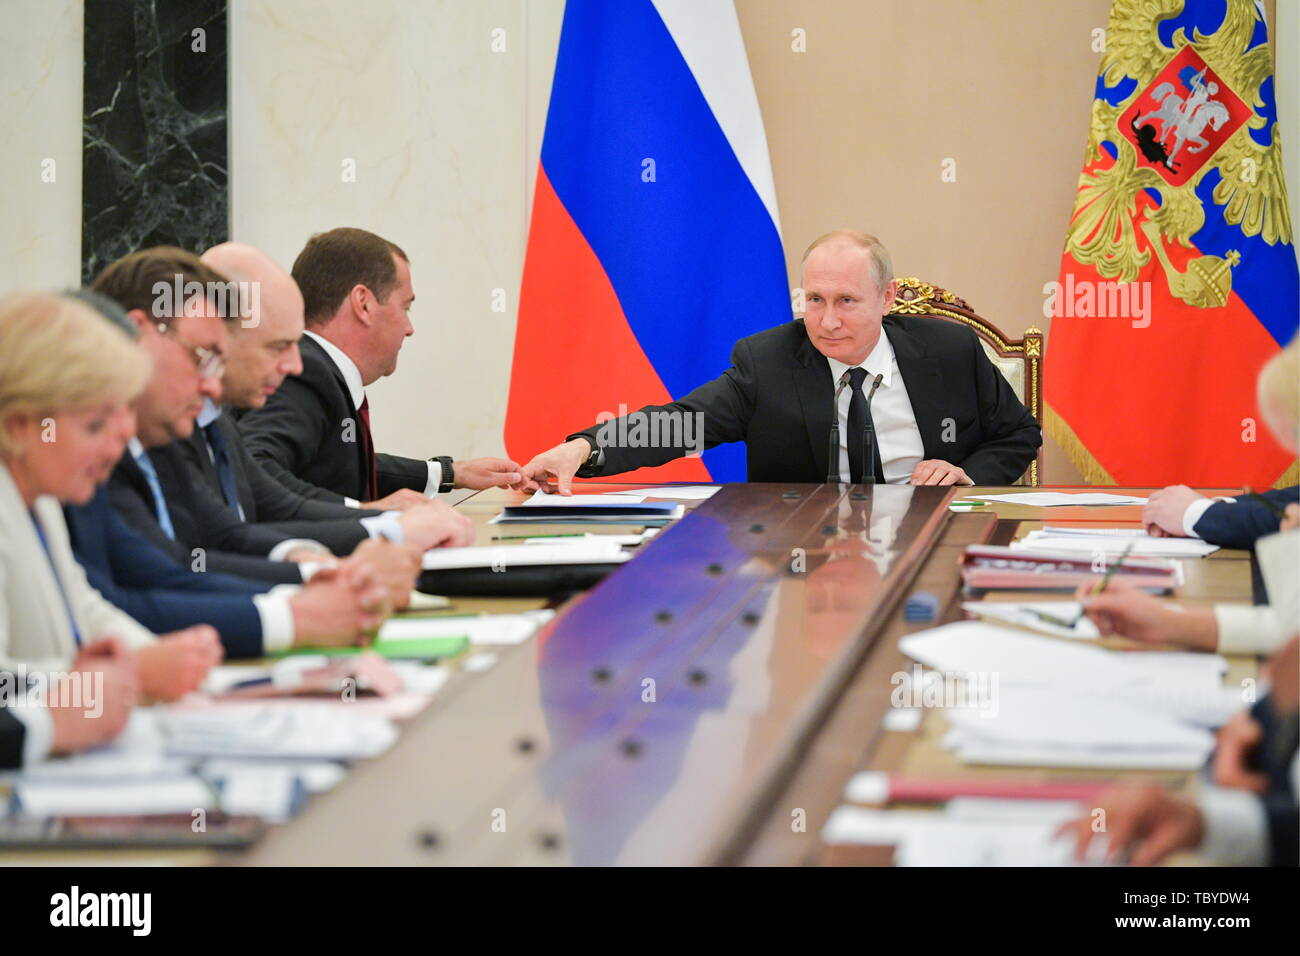 Moscow, Russia. 04th June, 2019. MOSCOW, RUSSIA - JUNE 4, 2019: Russia's President Vladimir Putin and Russia's Prime Minister Dmitry Medvedev (R-L) a Russian government meeting at the Moscow Kremlin. Alexei Druzhinin/Russian Presidential Press and Information Office/TASS Credit: ITAR-TASS News Agency/Alamy Live News - Stock Image